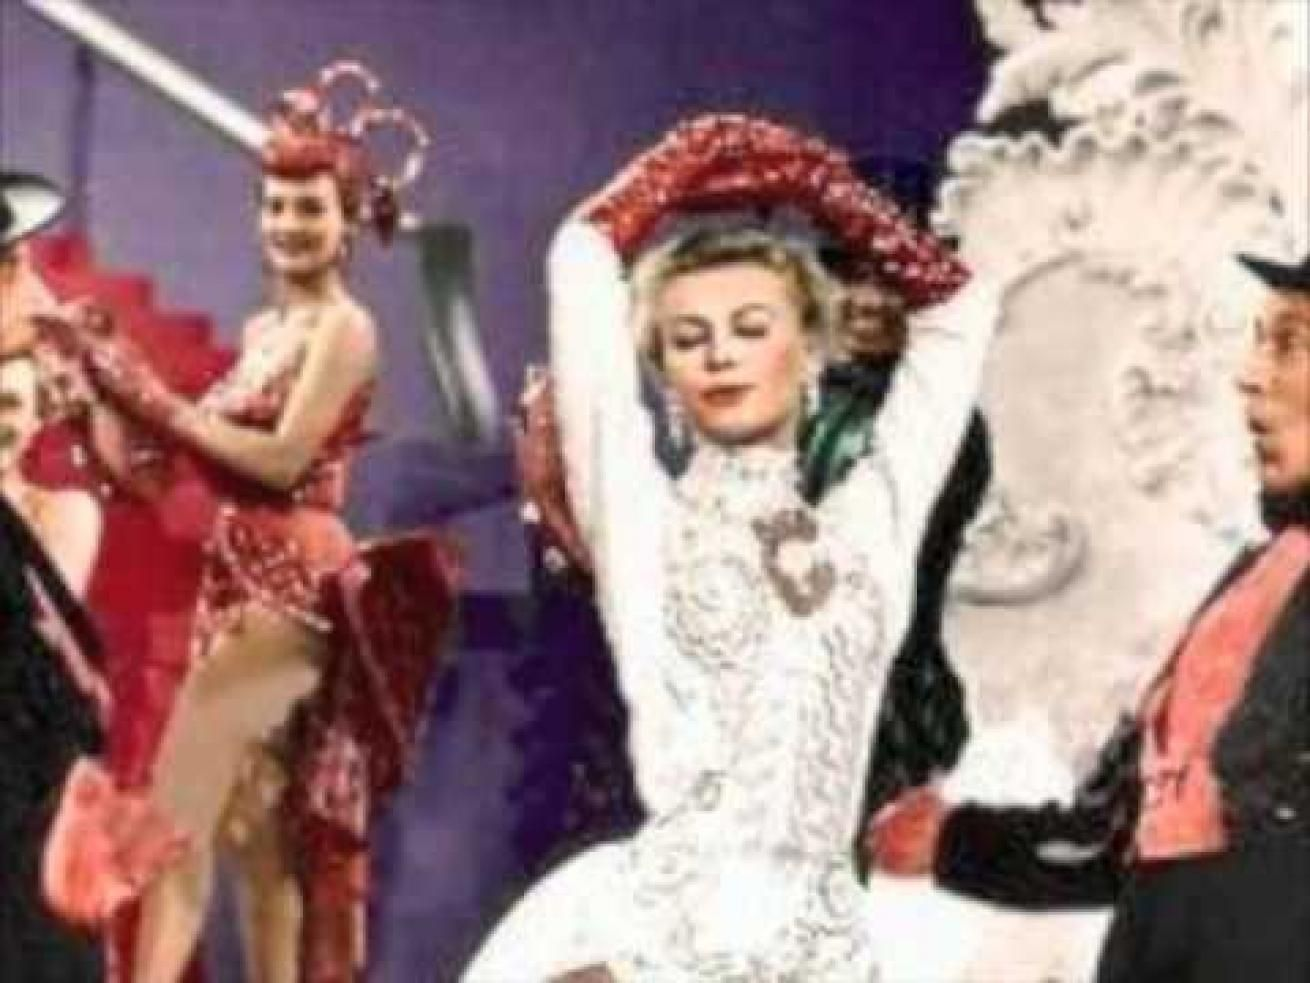 The Cast Of White Christmas.White Christmas Movie 1954 Cast Kaye Rosemary Clooney